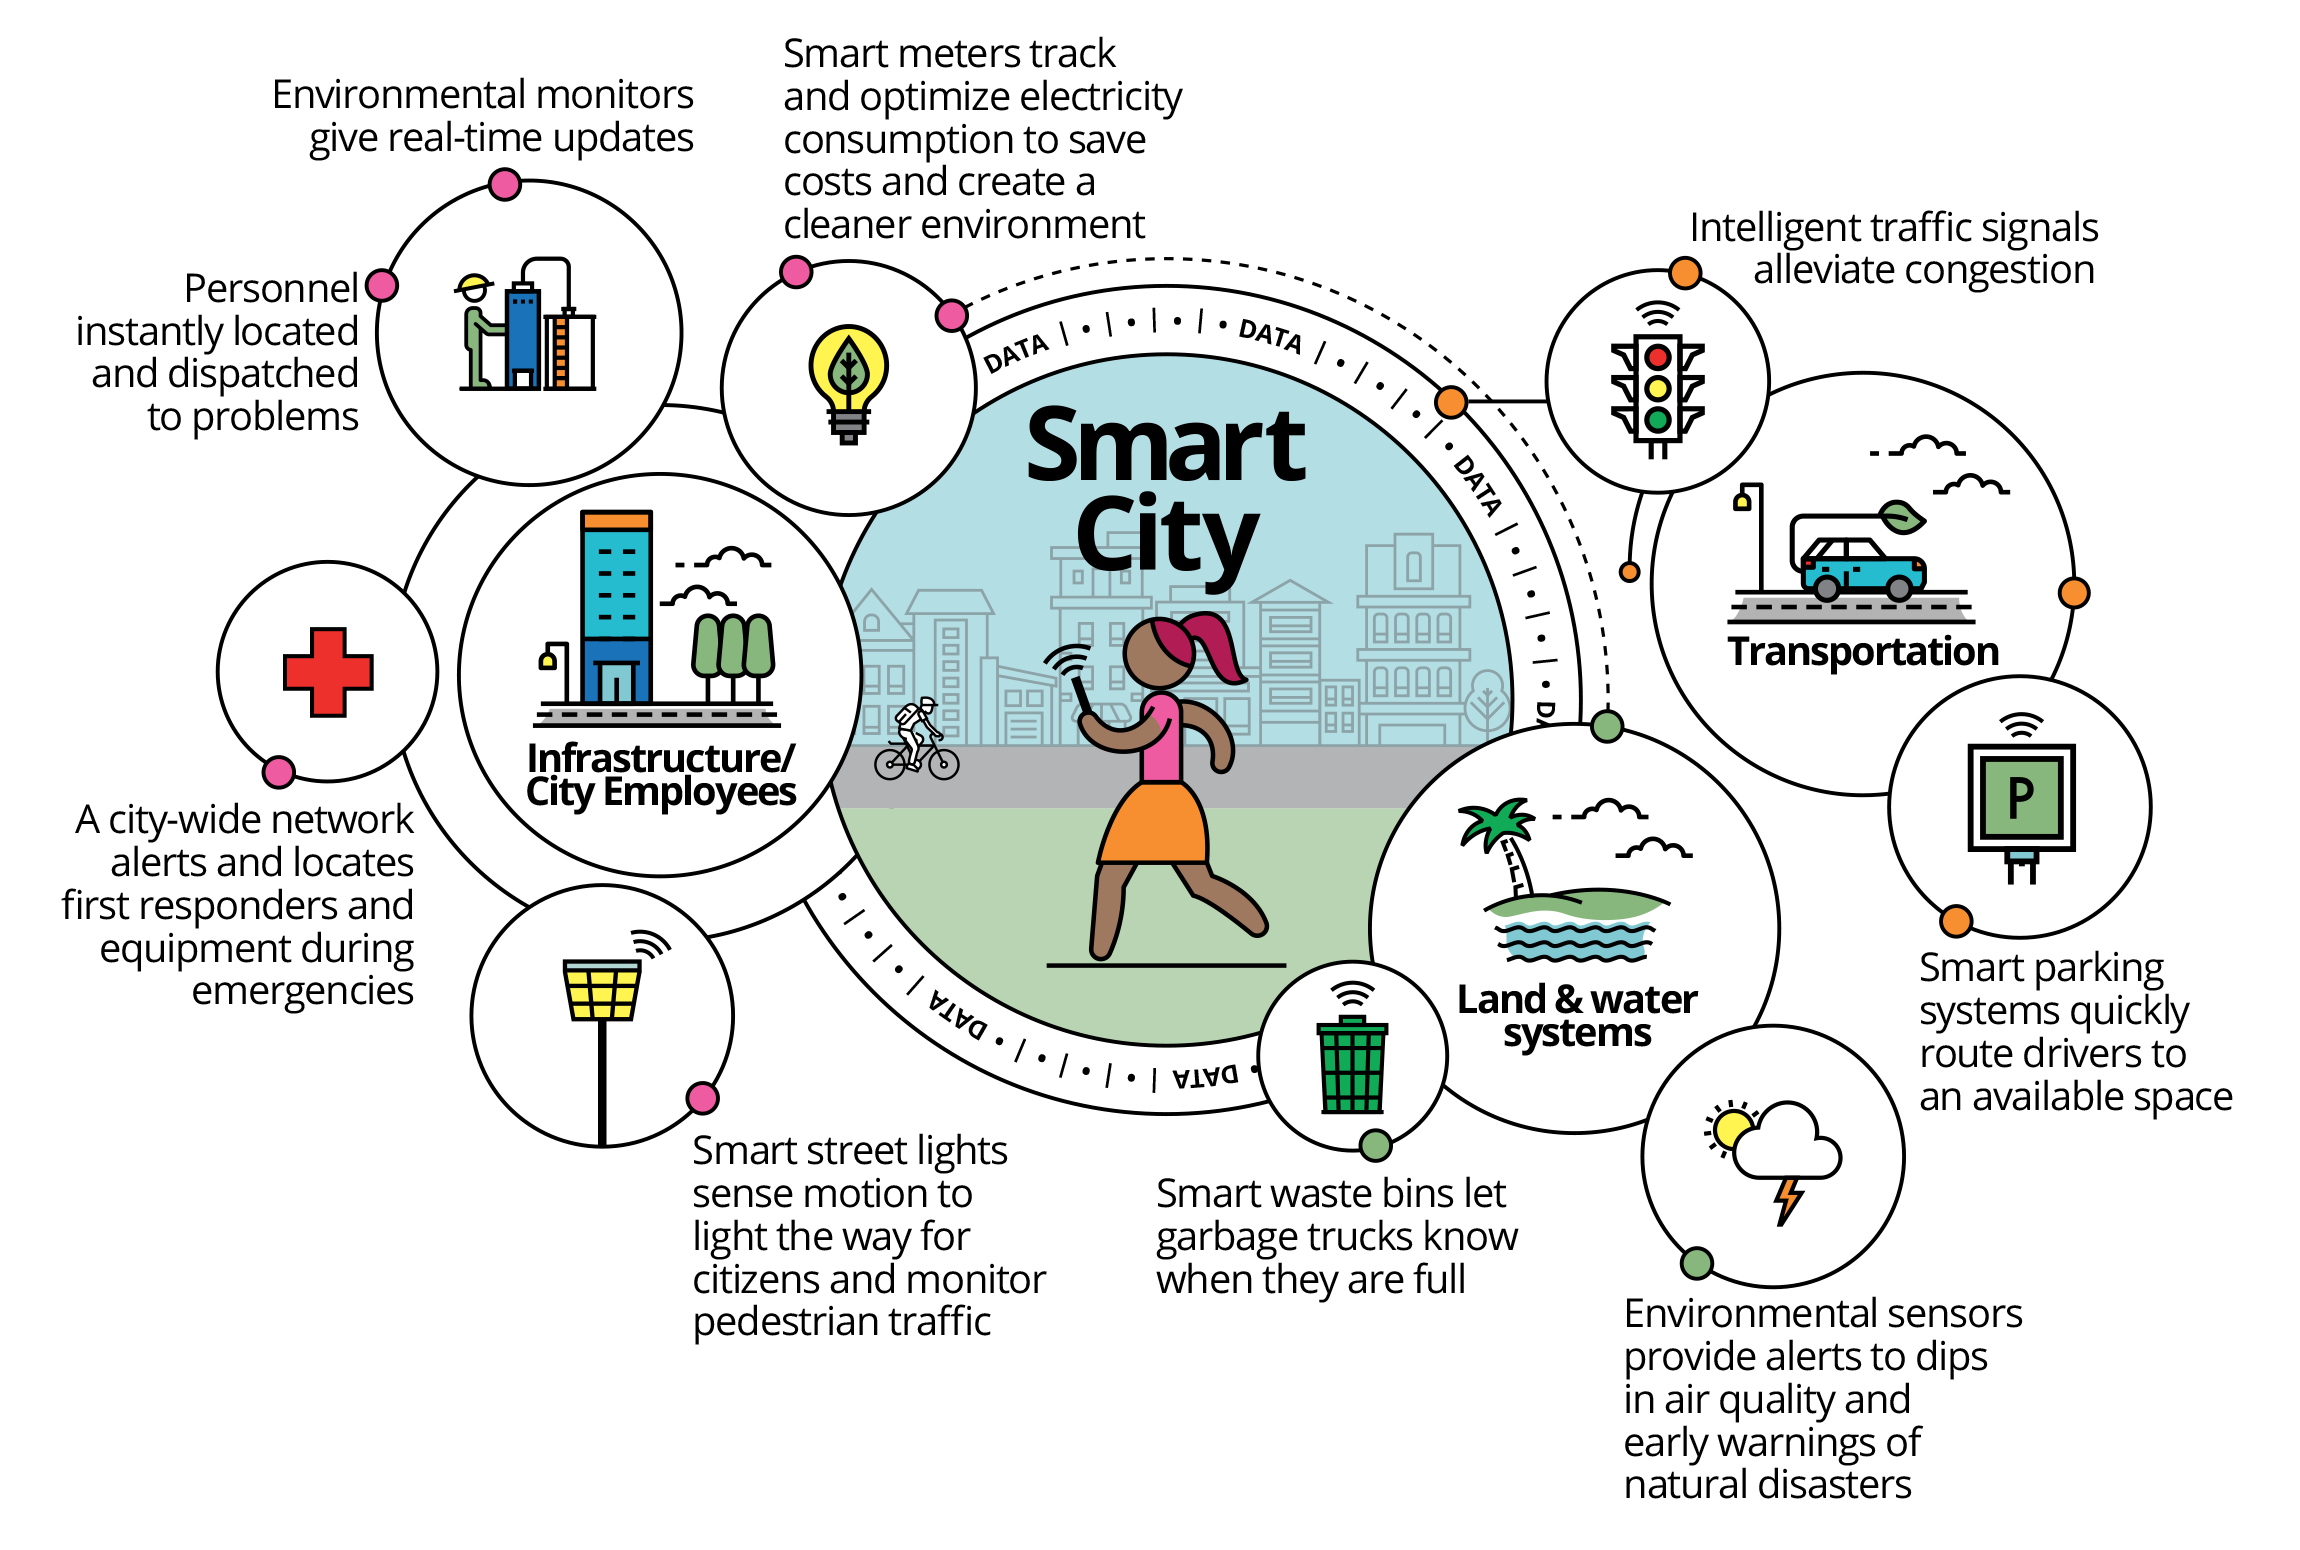 The components of a smart city